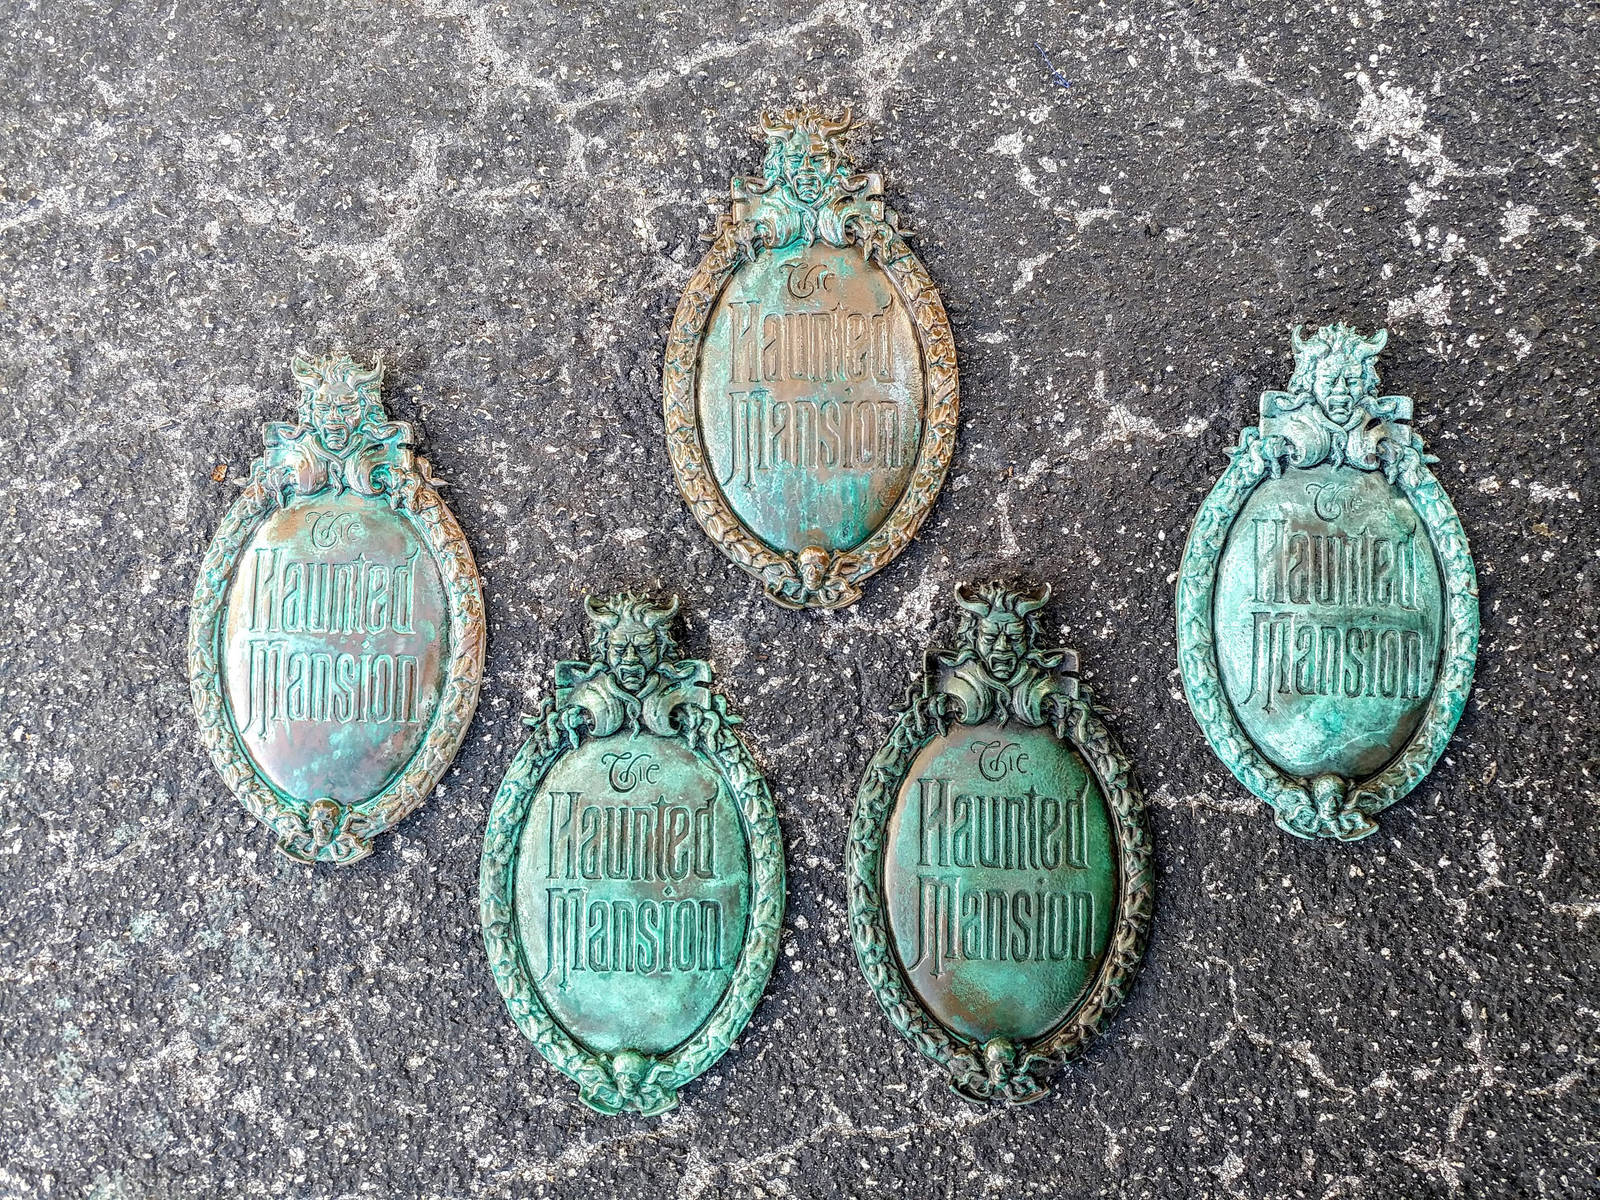 DisneyWorld Haunted Mansion 12in Plaque Replicas by JohnsonArmsProps